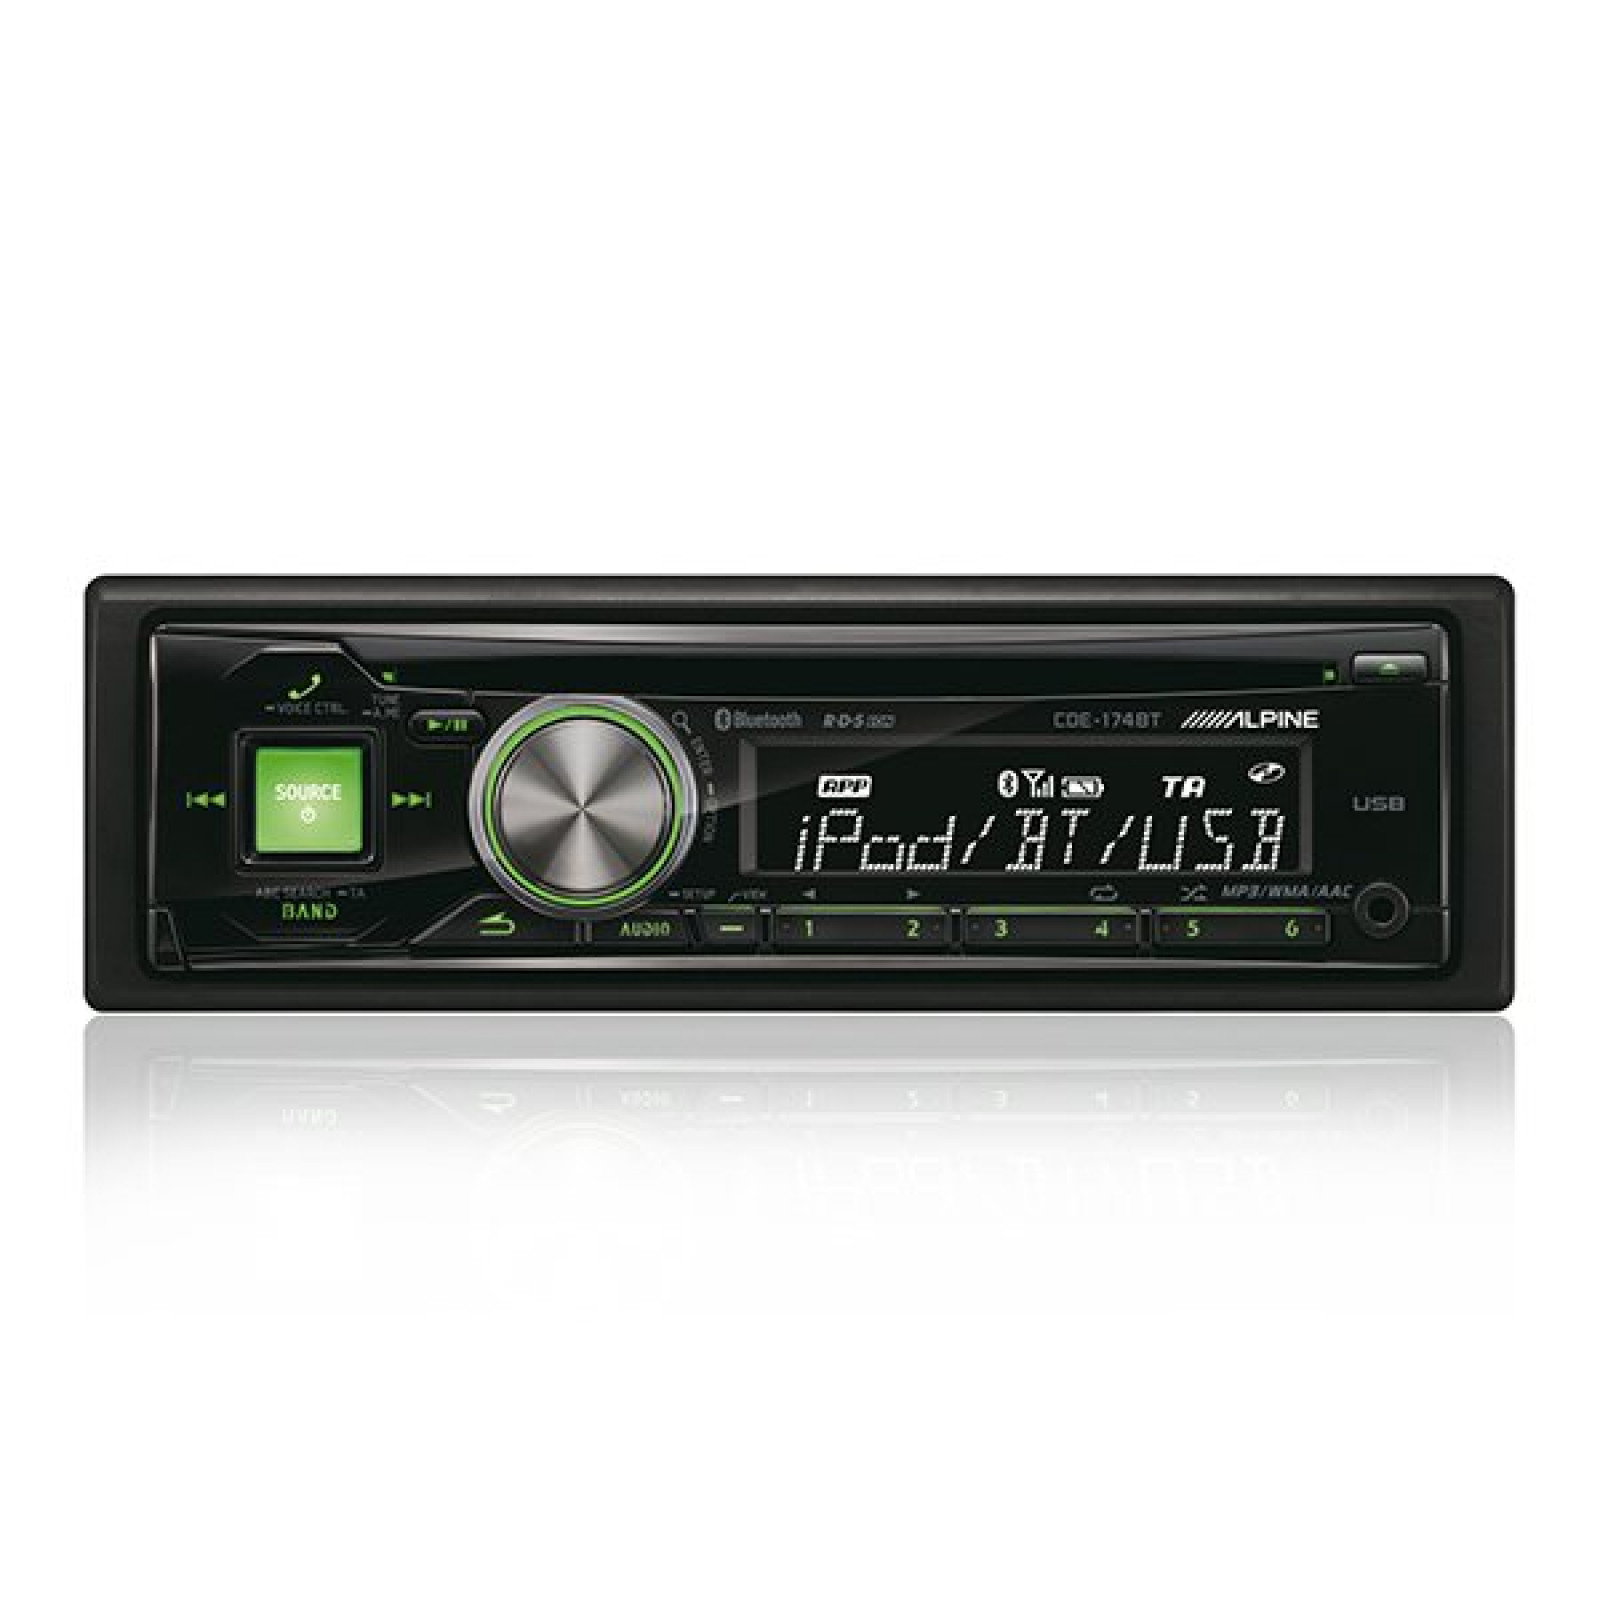 alpine cde 174bt single din radio cd mp3 bluetooth aux player stereo head unit the sl shop. Black Bedroom Furniture Sets. Home Design Ideas